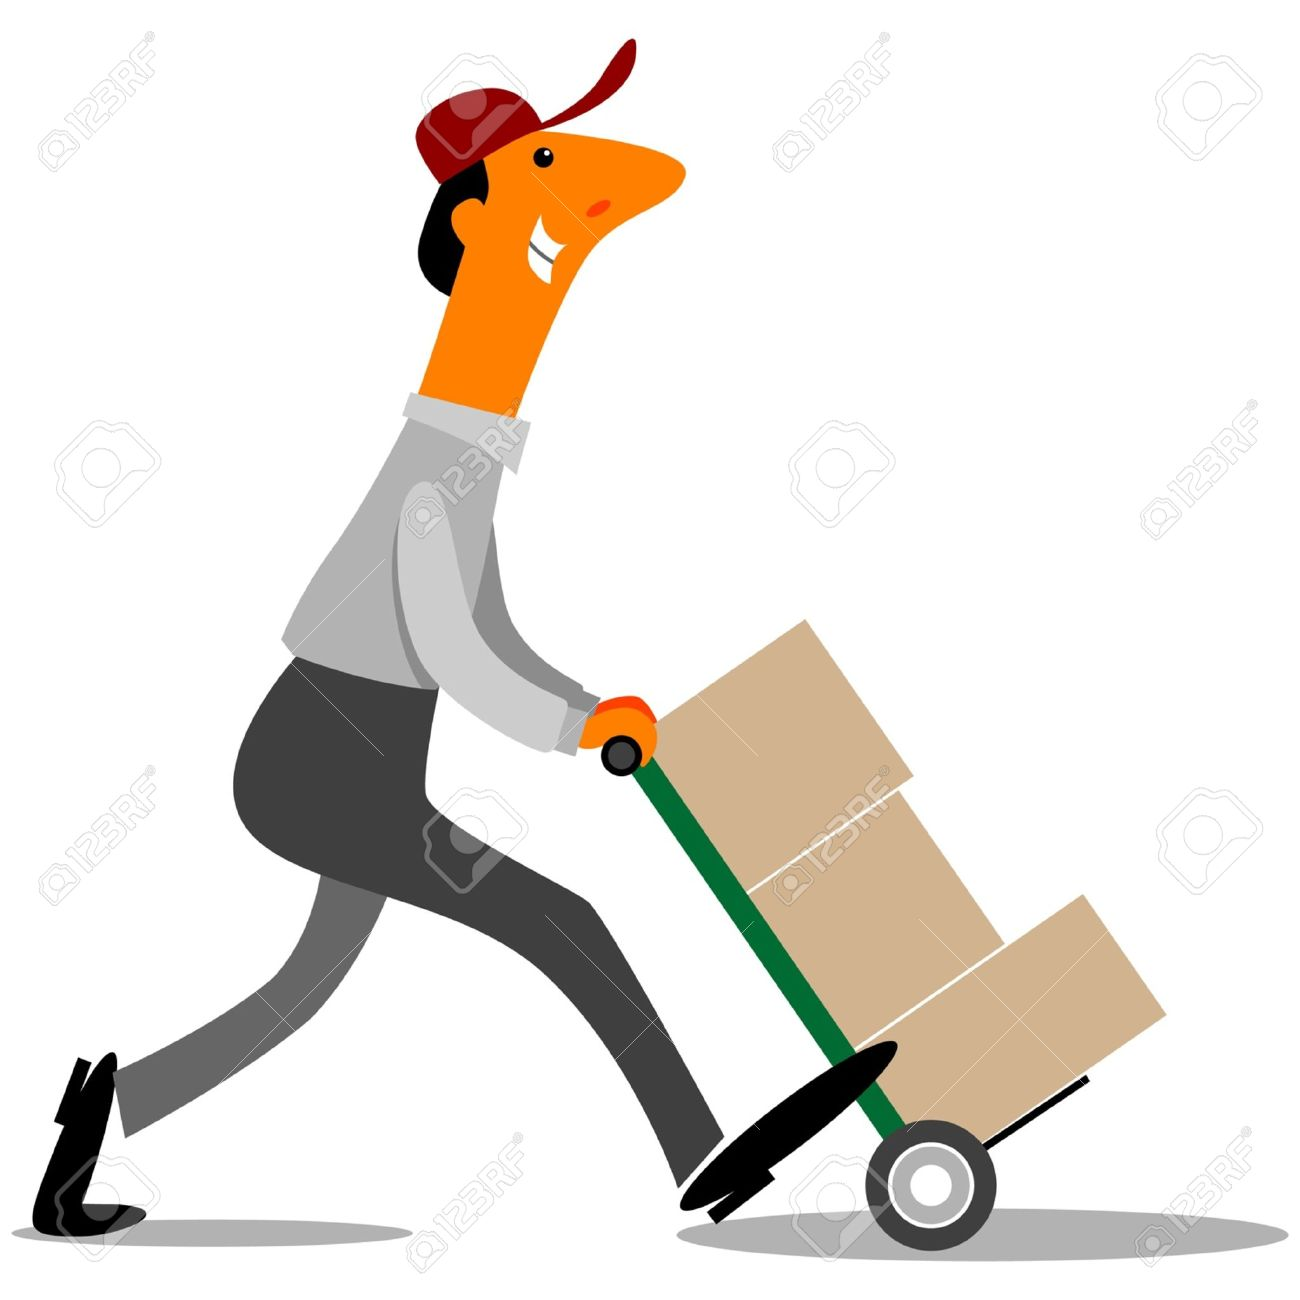 Fed Ex clipart delivery person Delivery Driver Job Spotlight driver